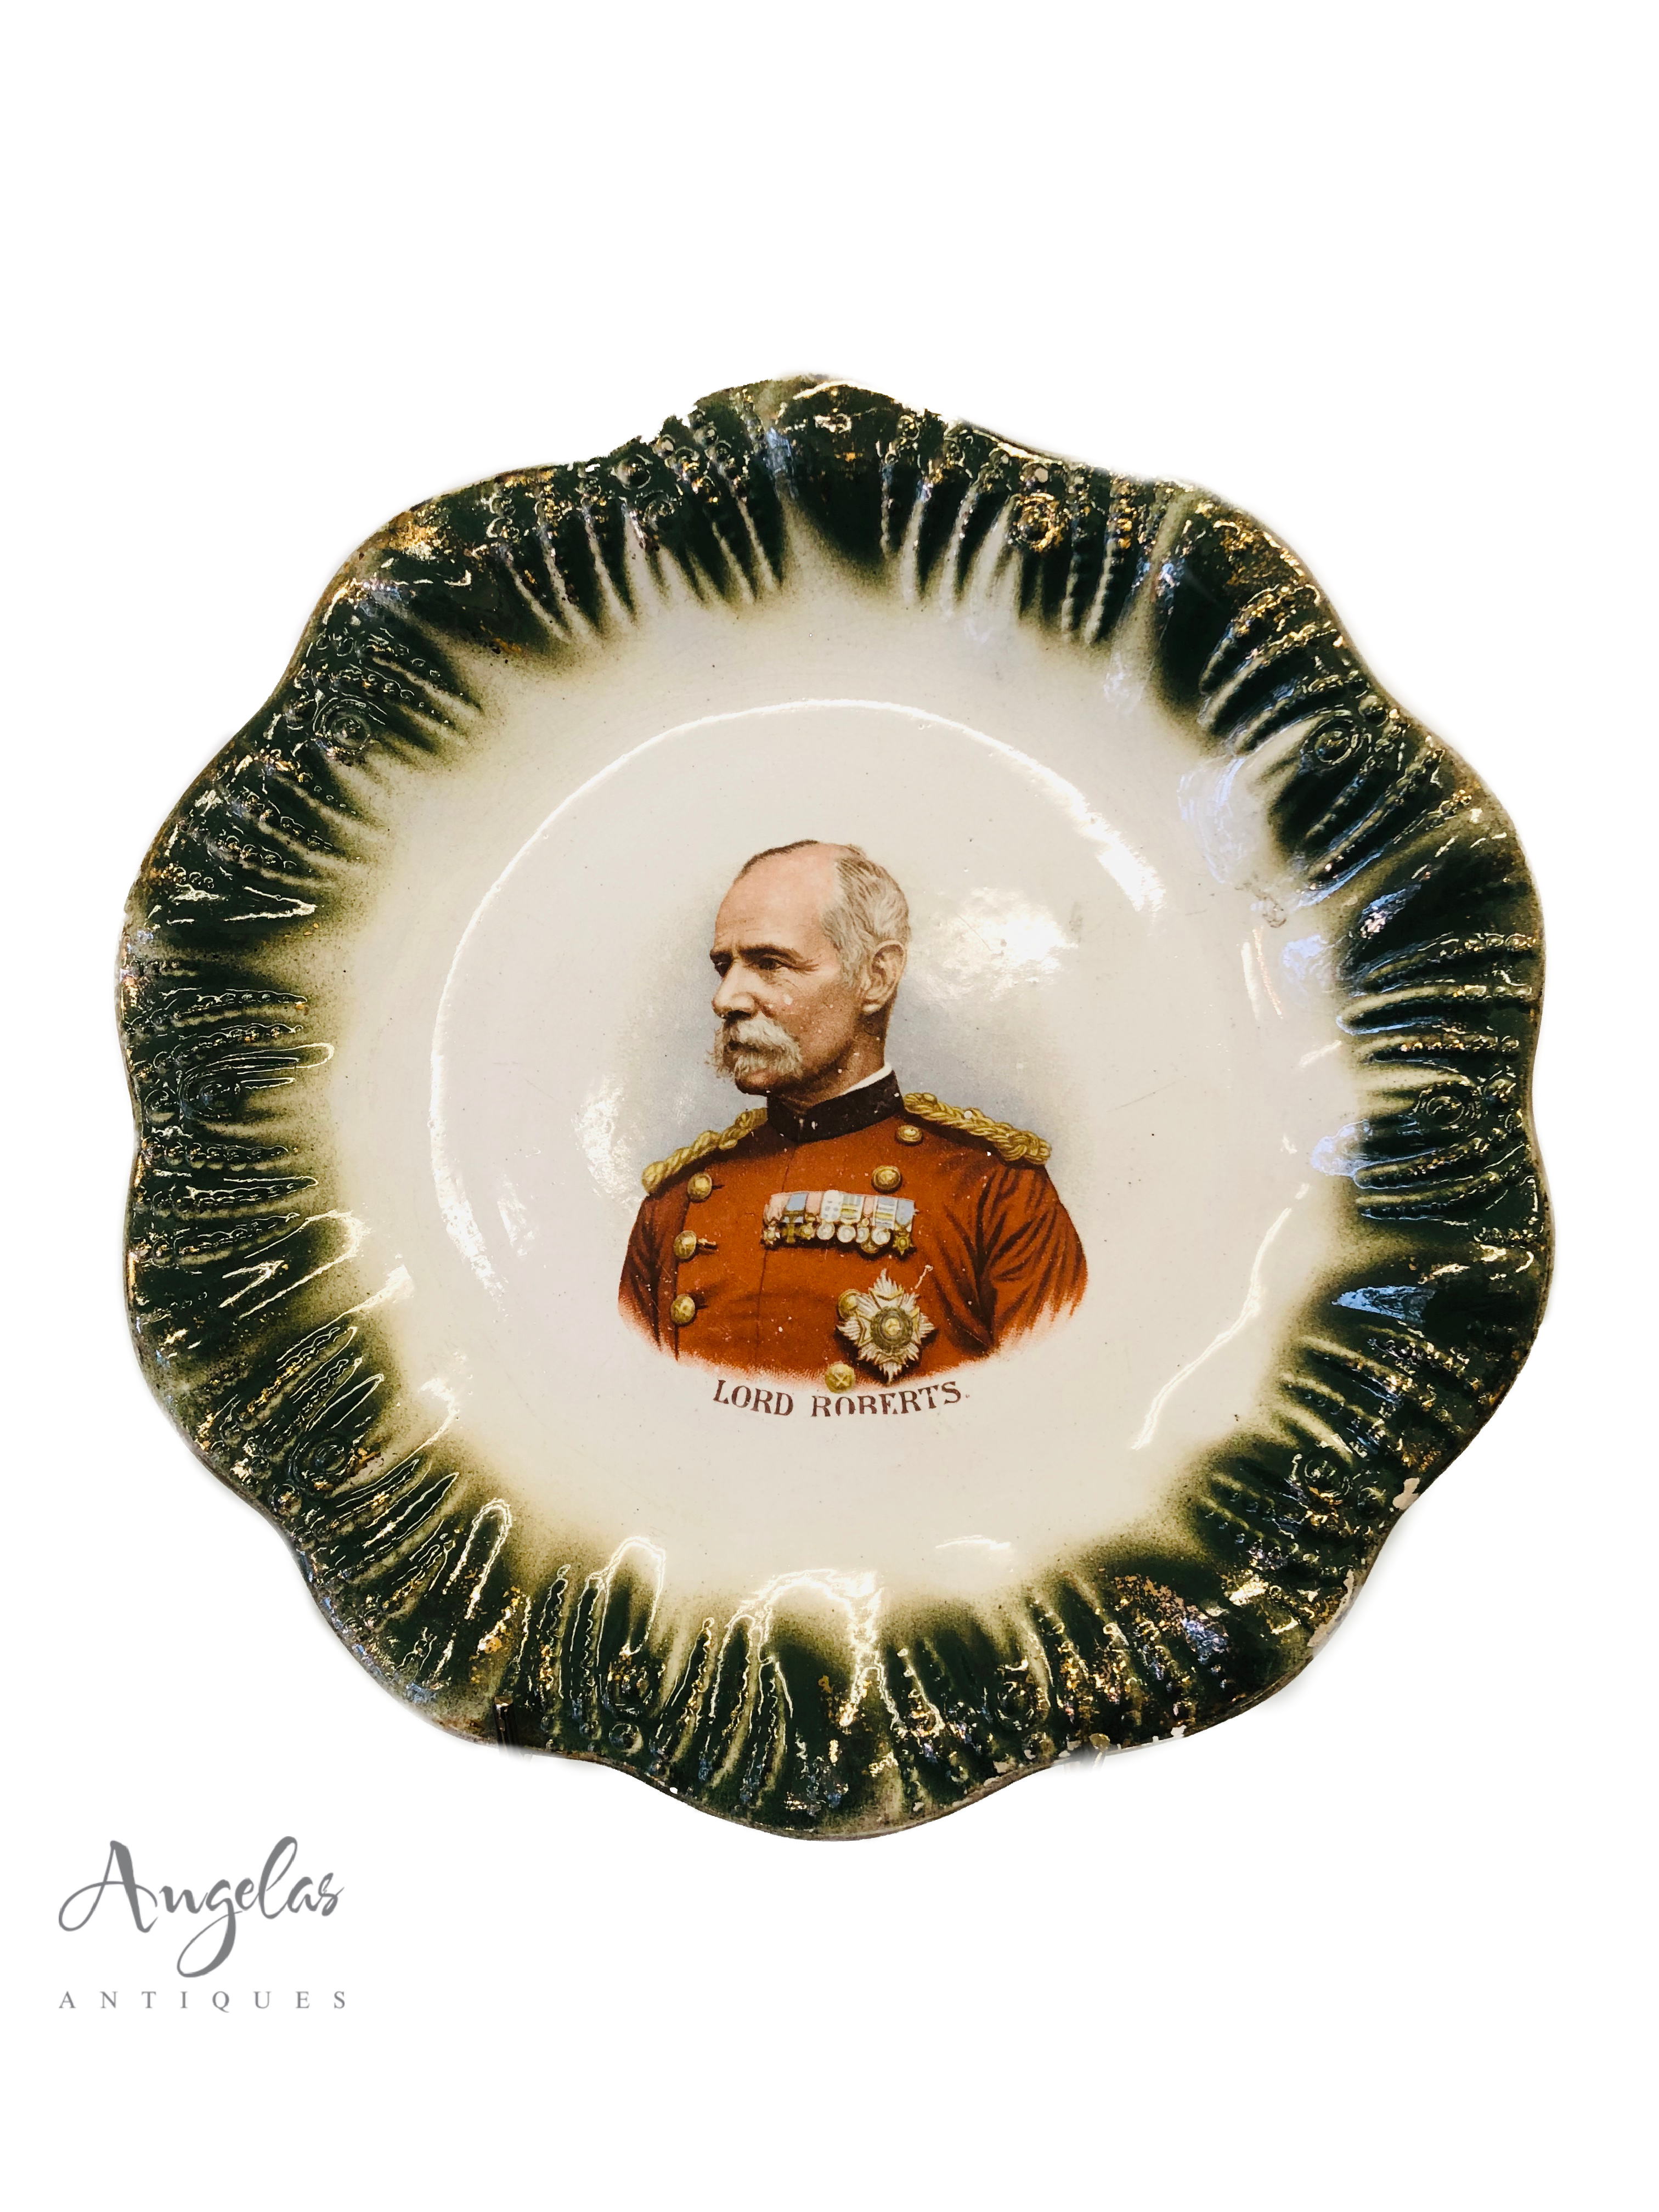 Delph Plate Commemorating Lord Roberts